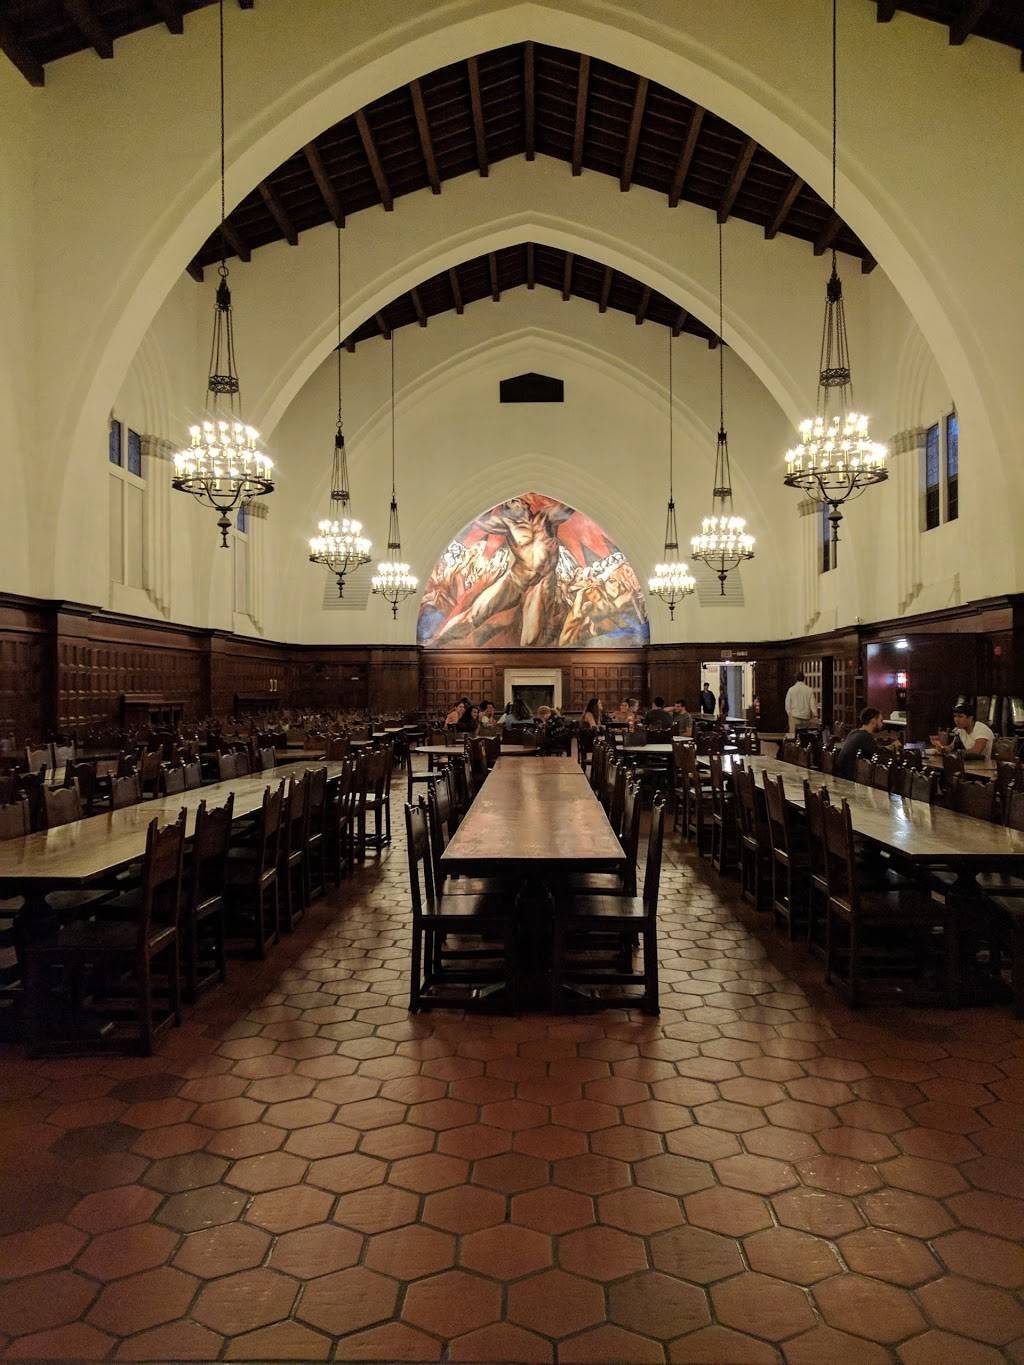 Frary Dining Hall   restaurant   347 E 6th St, Claremont, CA 91711, USA   9096079280 OR +1 909-607-9280